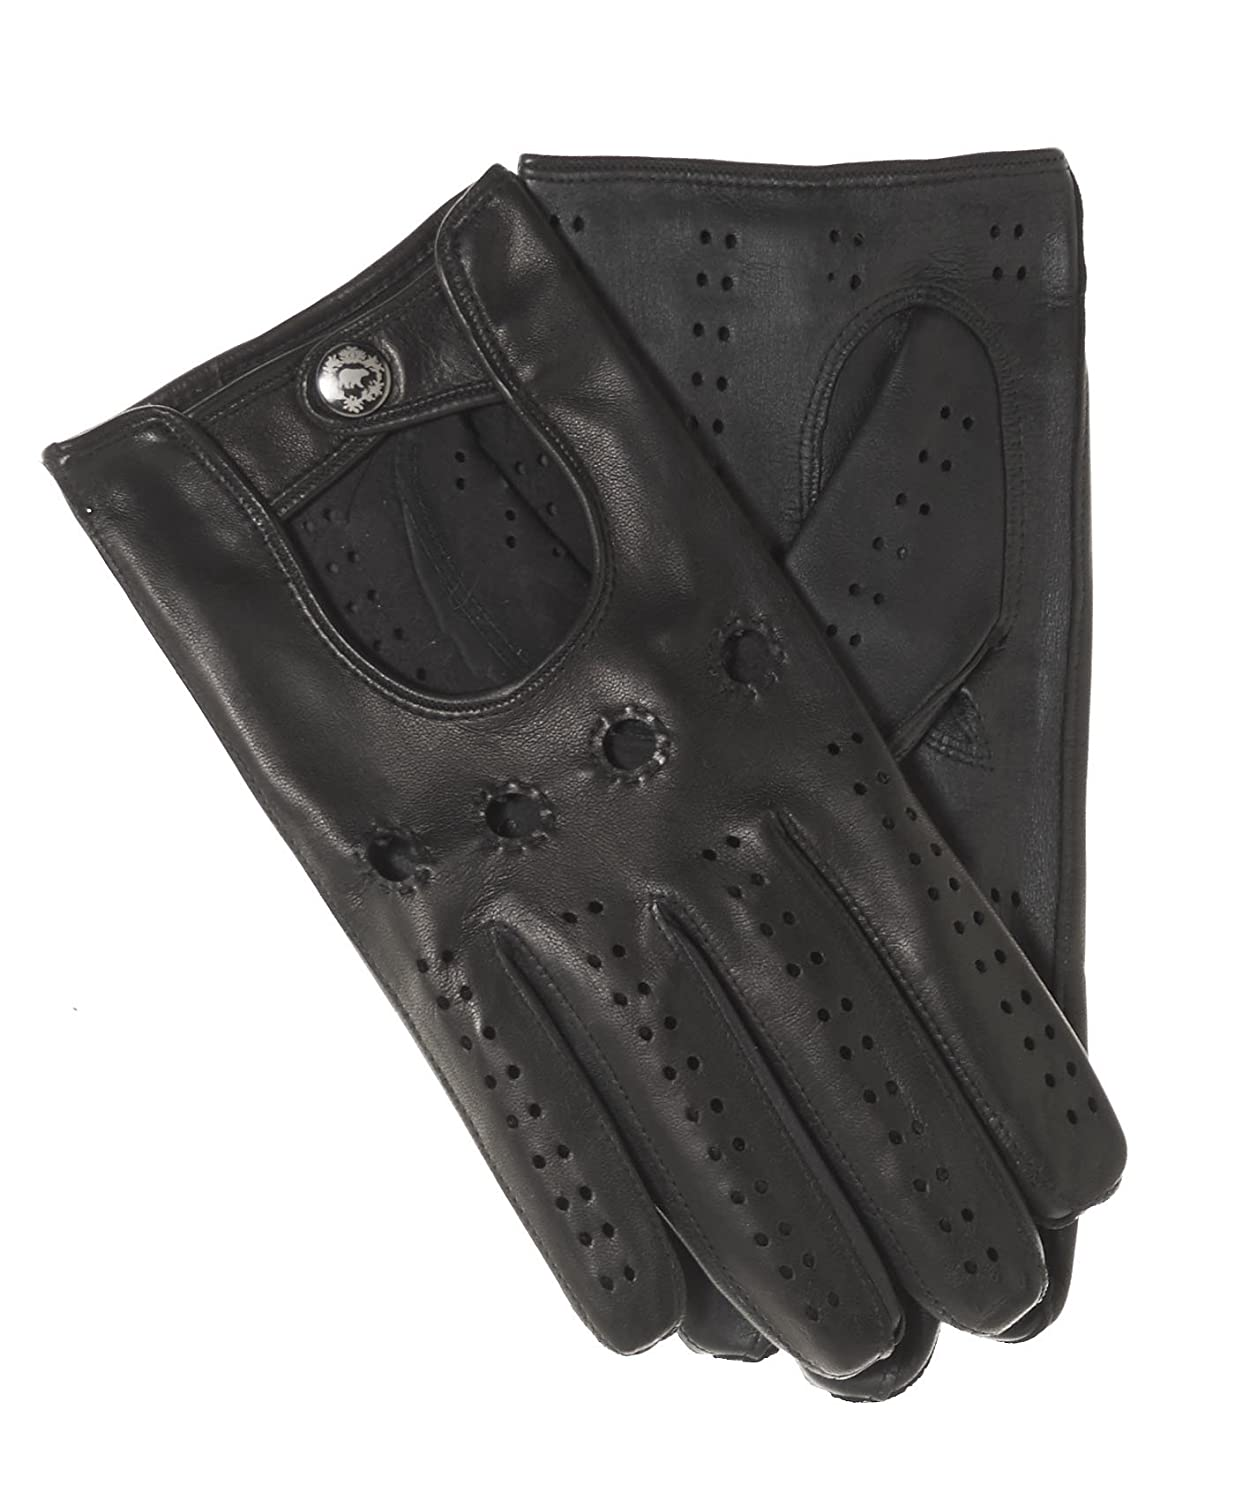 Leather driving gloves mercedes - Fratelli Orsini Men S Italian Touchscreen Leather Driving Gloves Size 7 Color Black At Amazon Men S Clothing Store